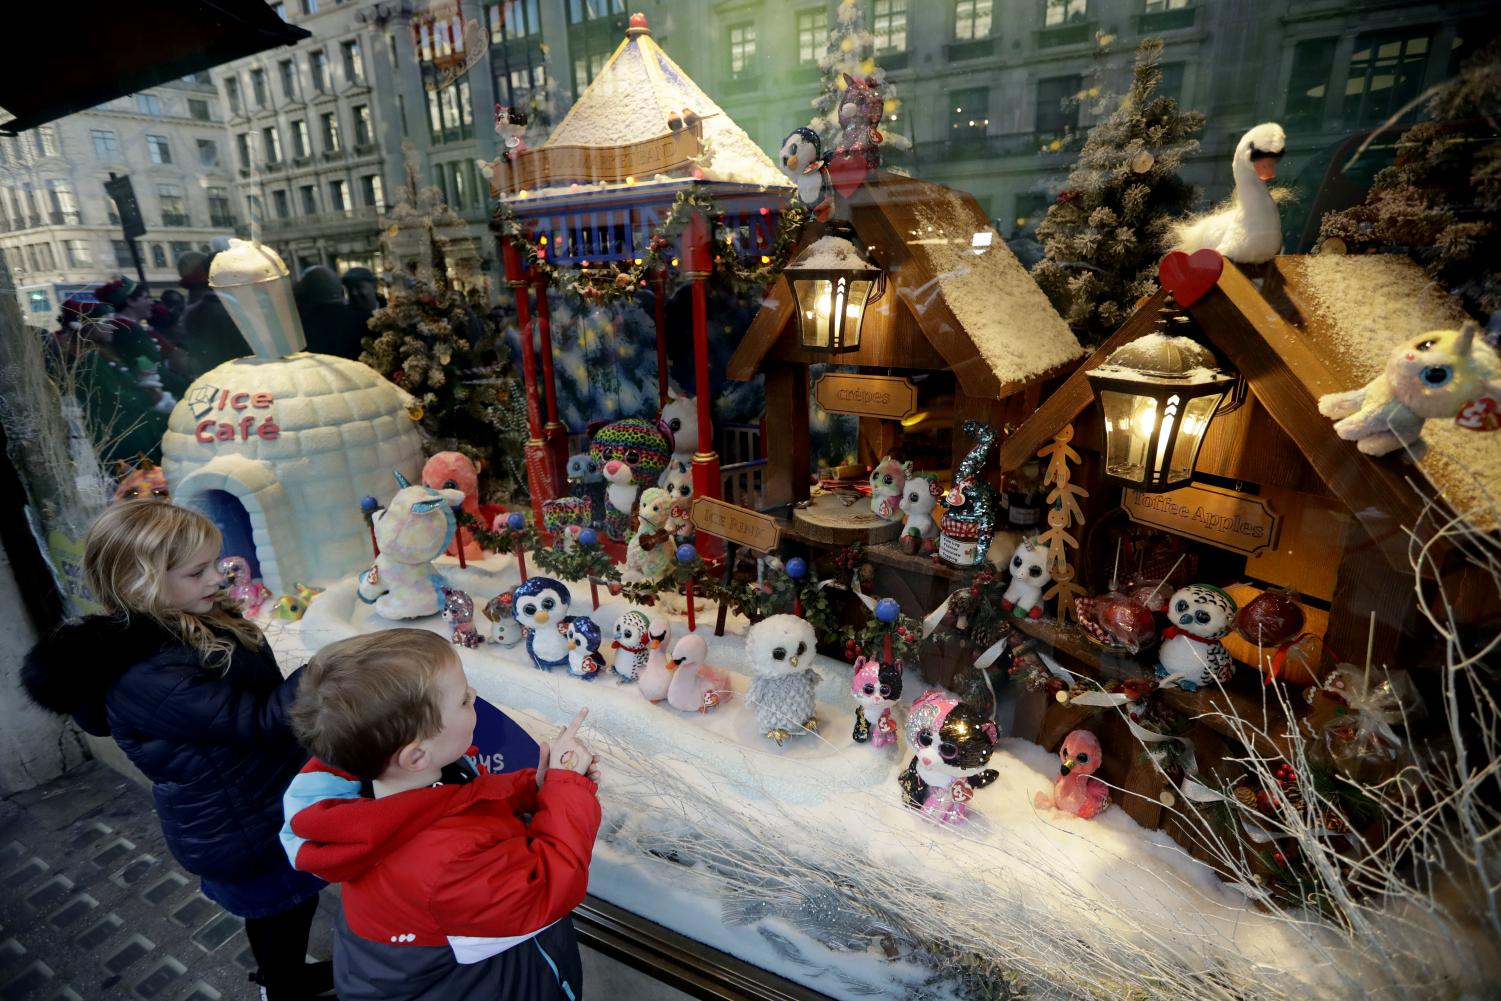 Children look at the newly unveiled Hamleys toy store Christmas window display which features Ty cuddly plush toys, on Regent Street in  London, Friday, Nov. 2, 2018.